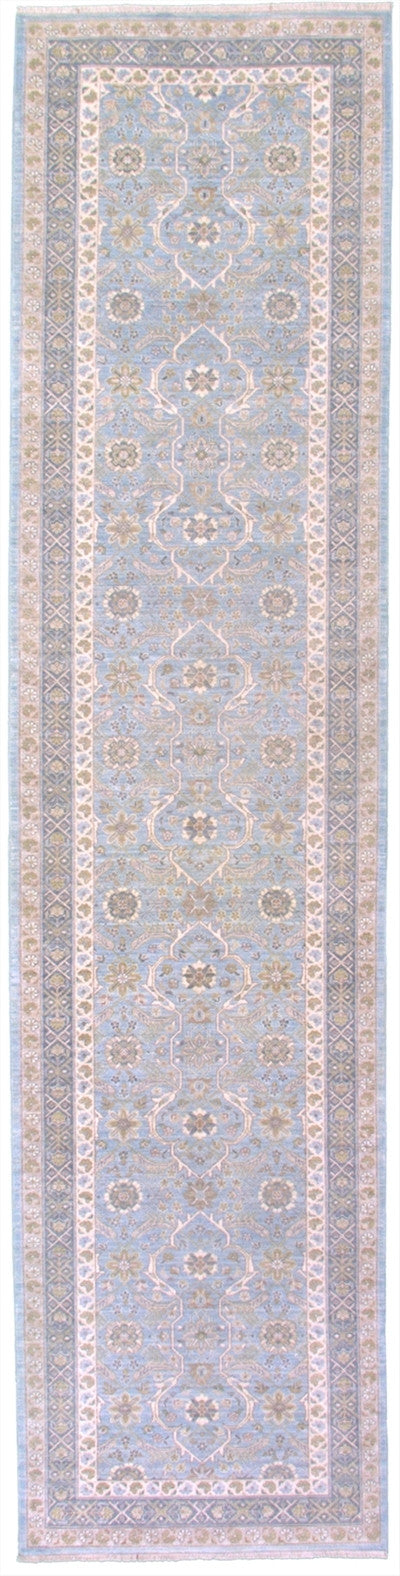 New Pakistan Hand Knotted Antique Reproduction of a 19th Century Persian Tabriz Carpet Runner  2'8